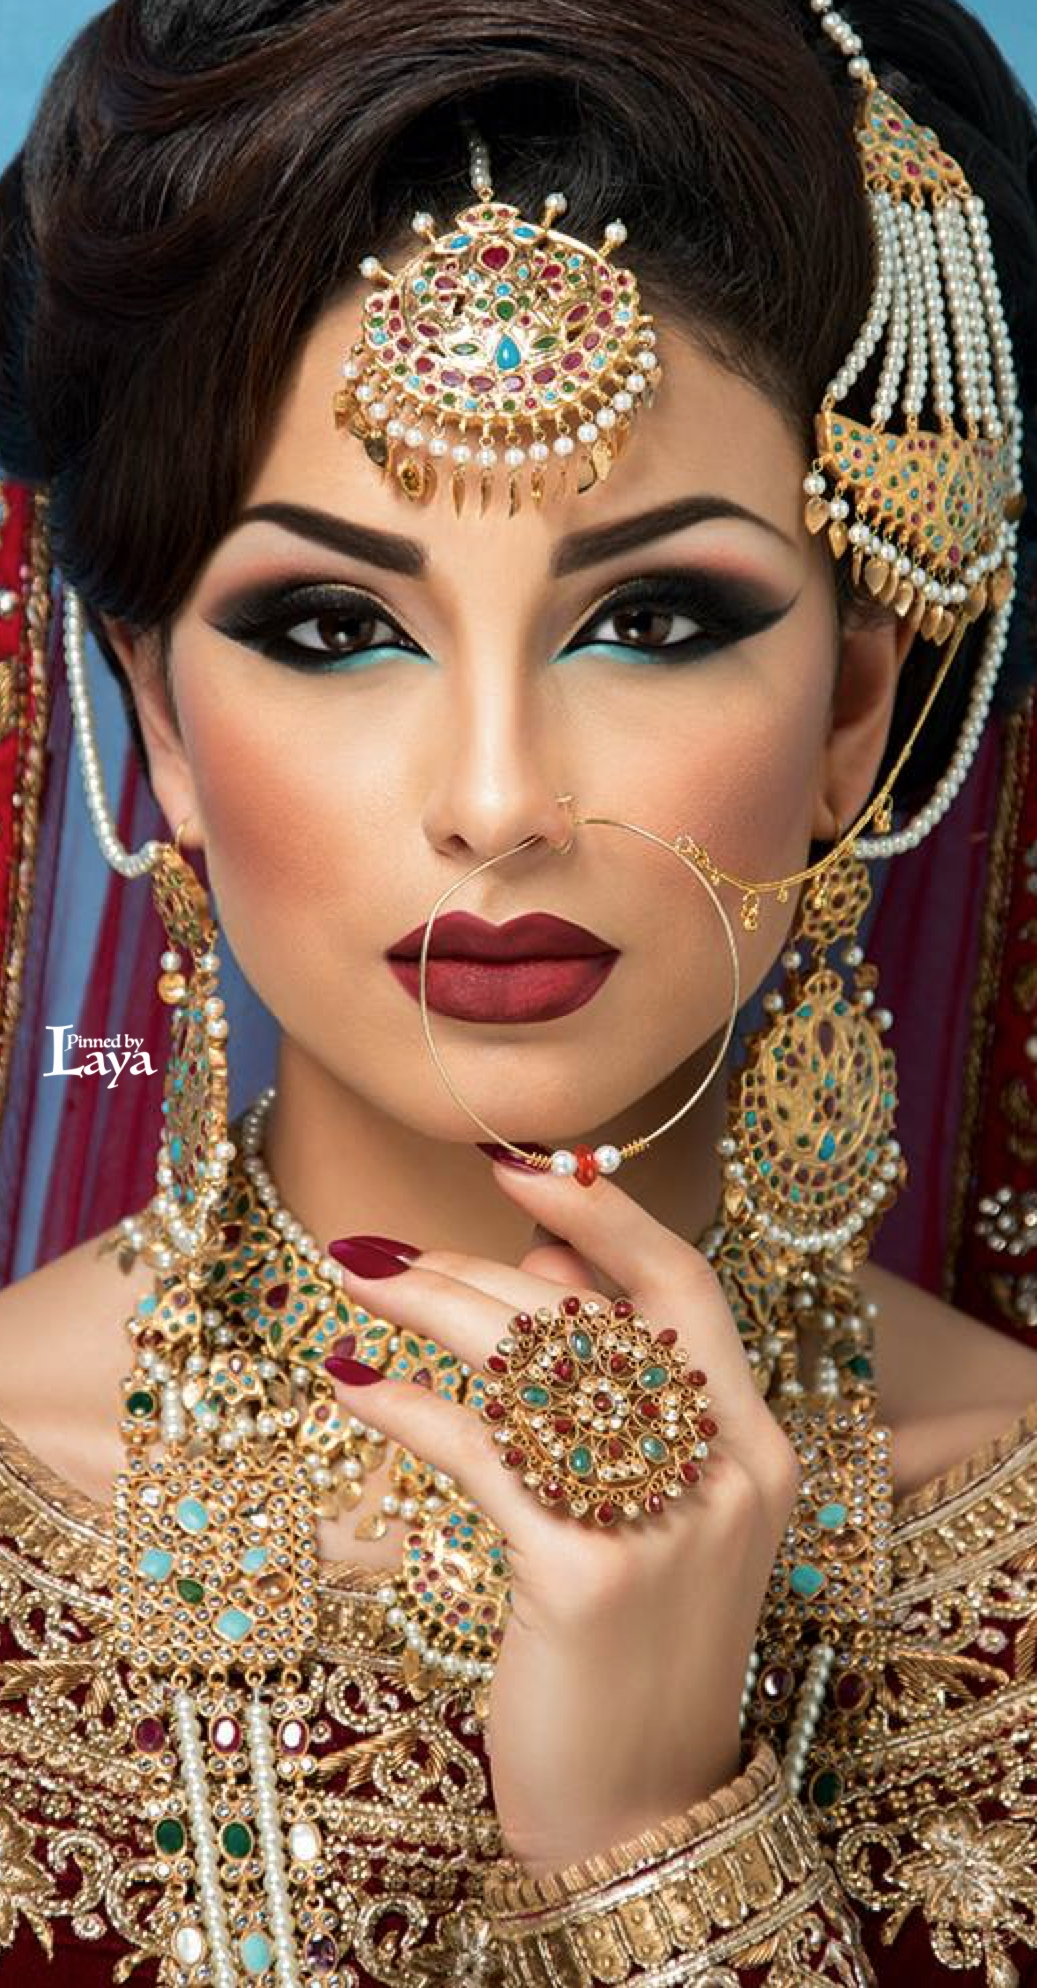 Pin By Label Shrena Hirawat On Beauty, Hair, Makeup   Pinterest in Indian Bride Makeup Images